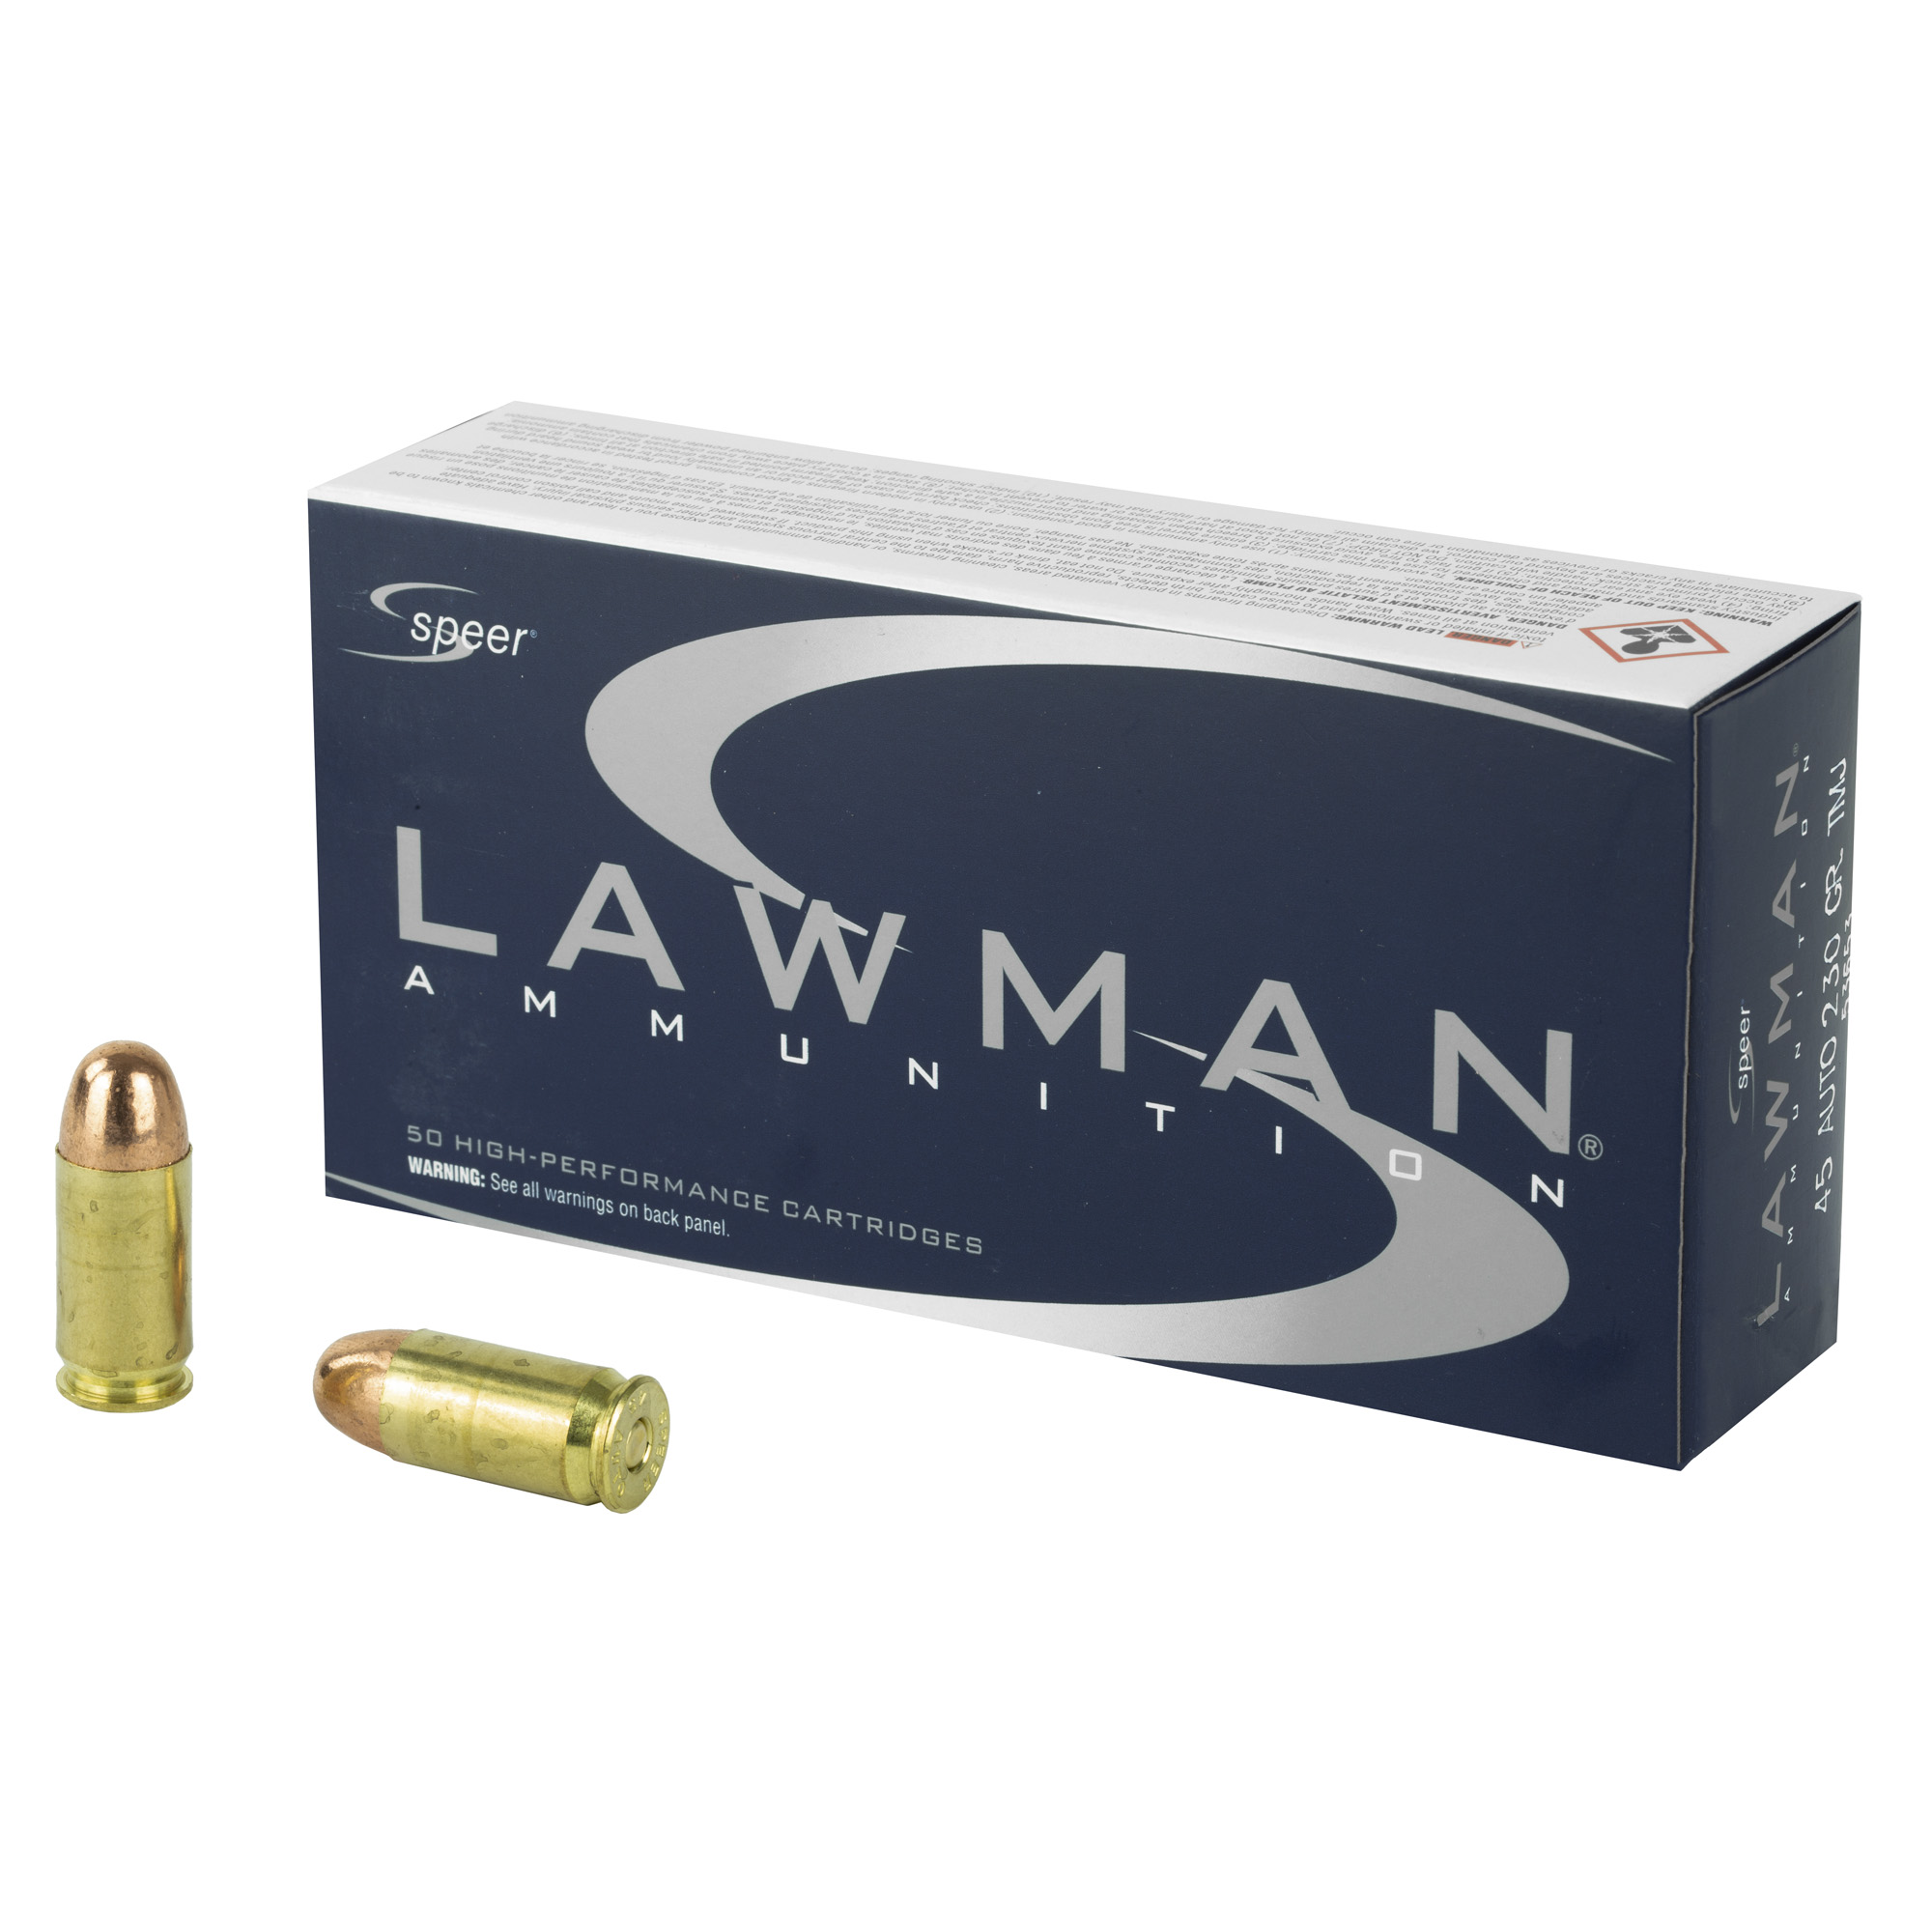 Speer Ammo 53653 Lawman 45 ACP 230 gr Total Metal Jacket (TMJ) 50RD Box